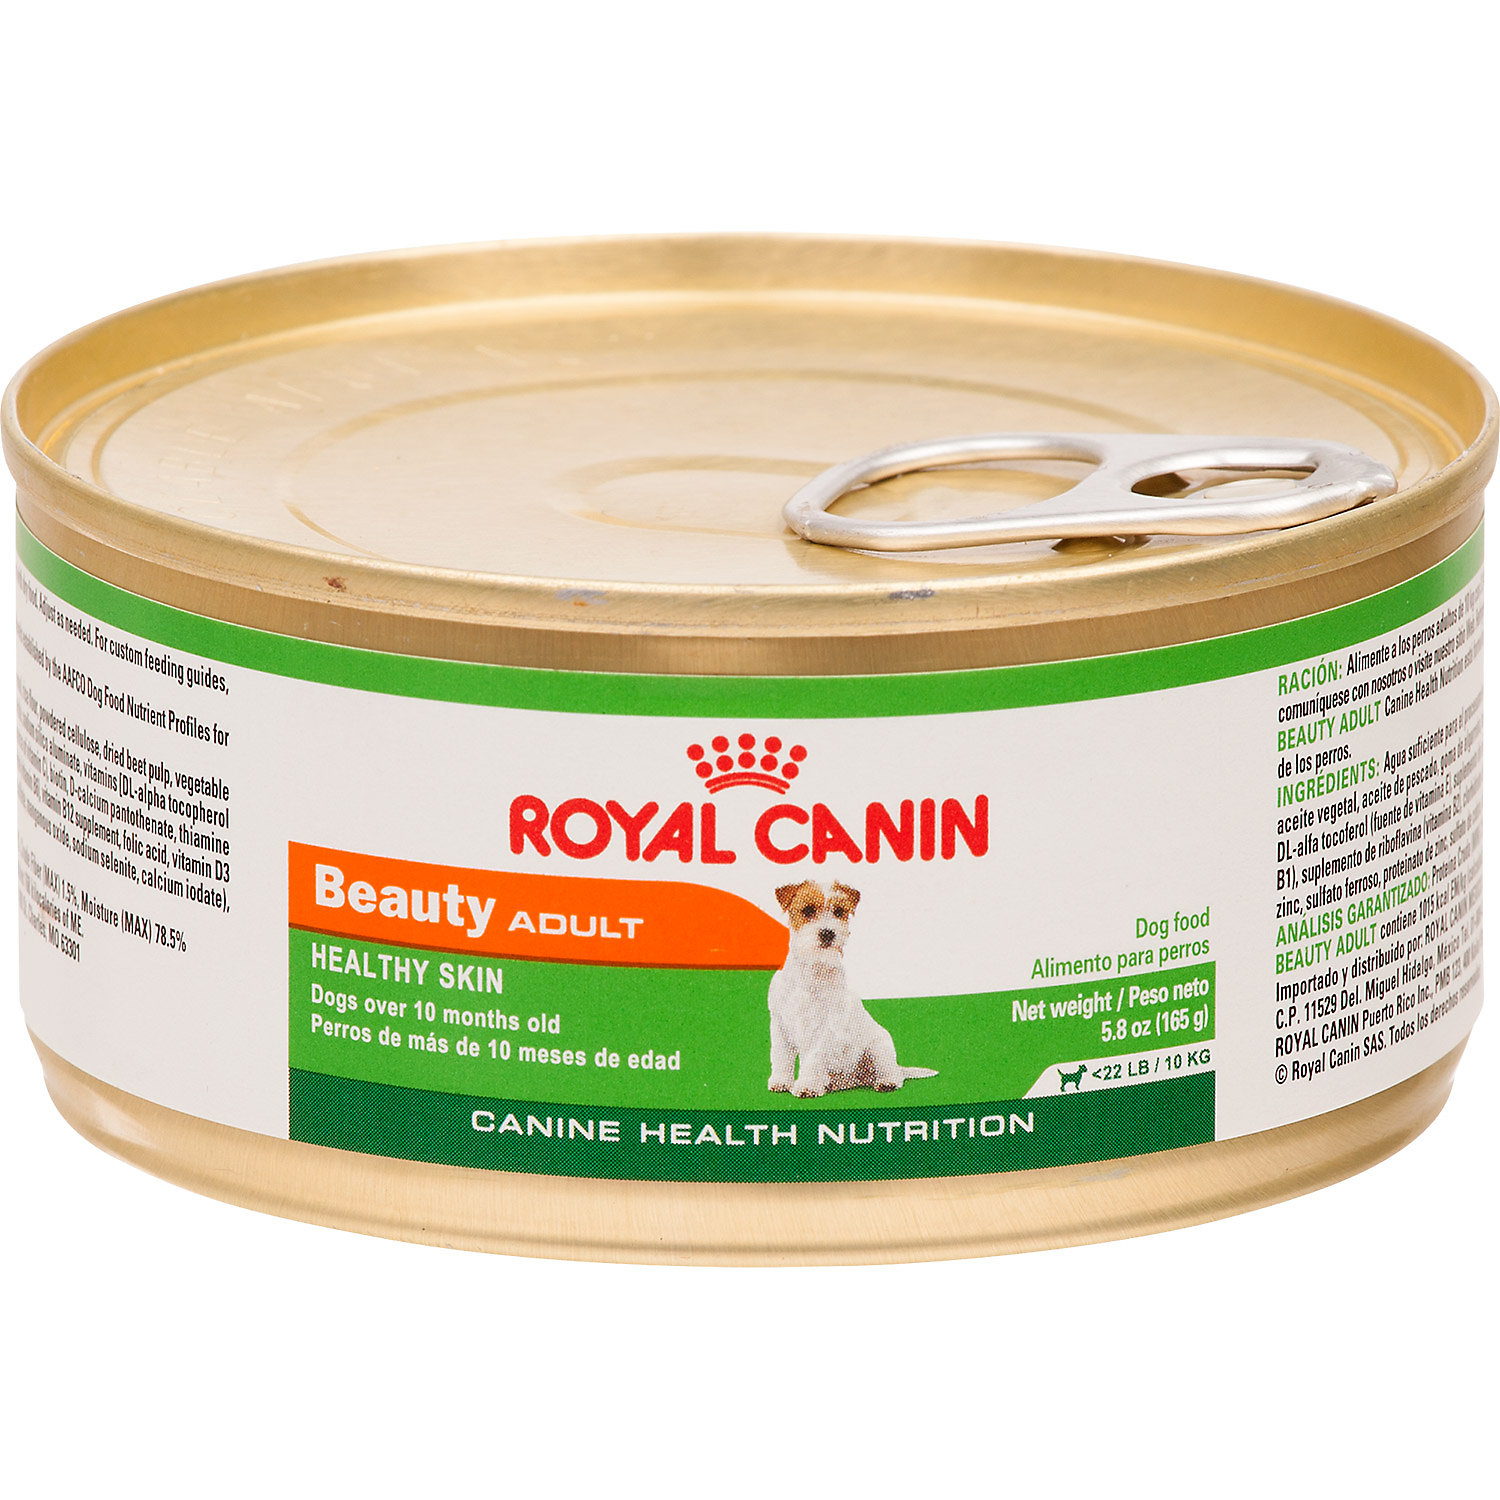 royal canin beauty canine health nutrition canned adult dog food case of 24 ebay. Black Bedroom Furniture Sets. Home Design Ideas